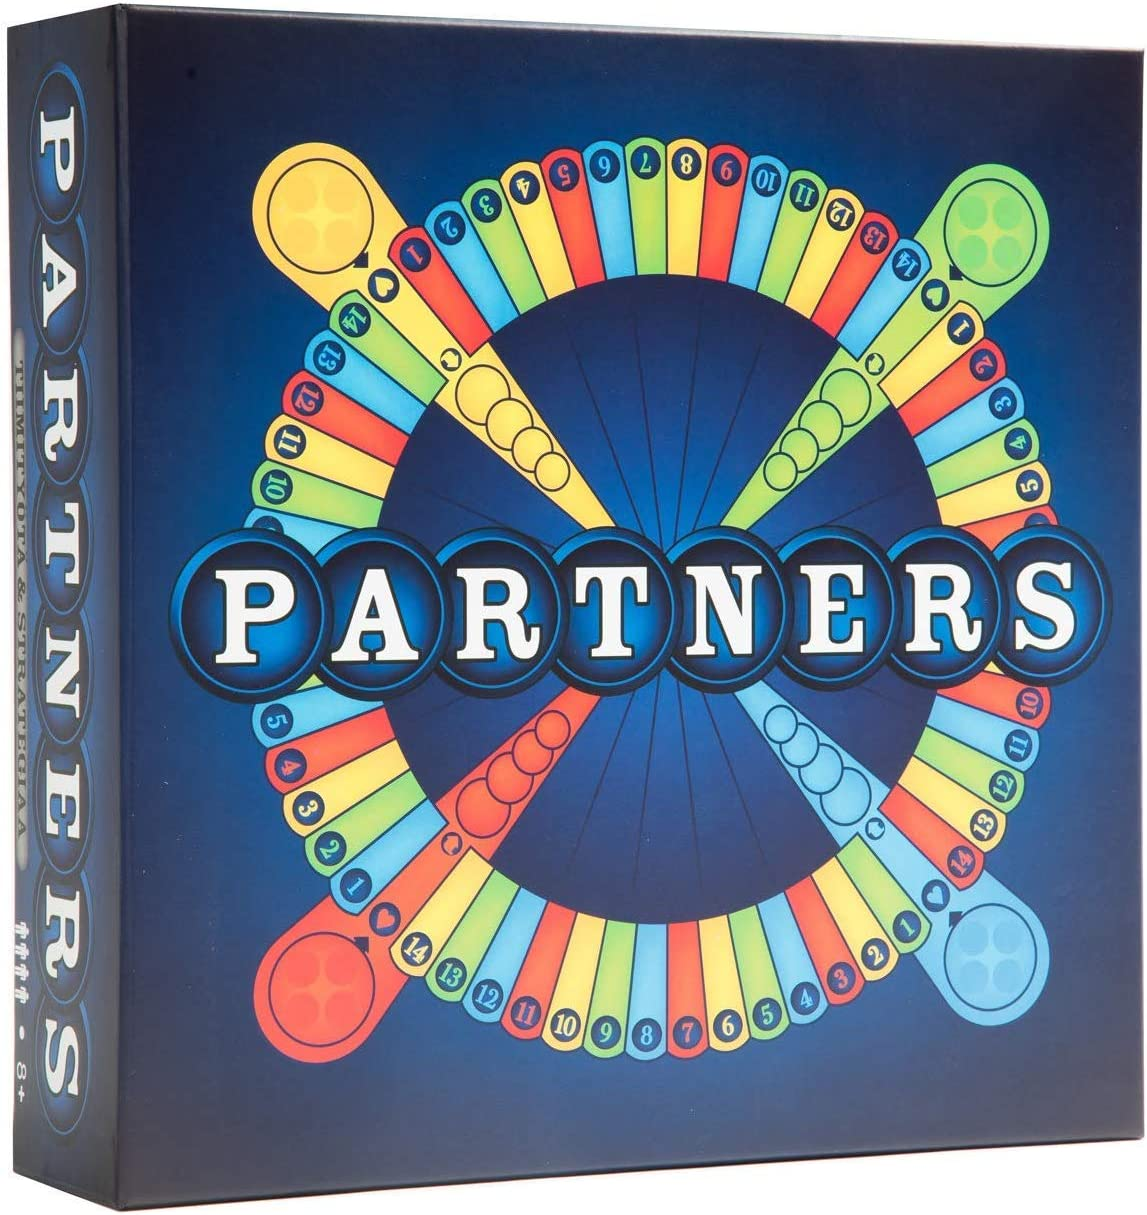 perfect for game night with family PARTNERS board game adults A 4 player strategy board game played in teams of 2 teens all ages friends